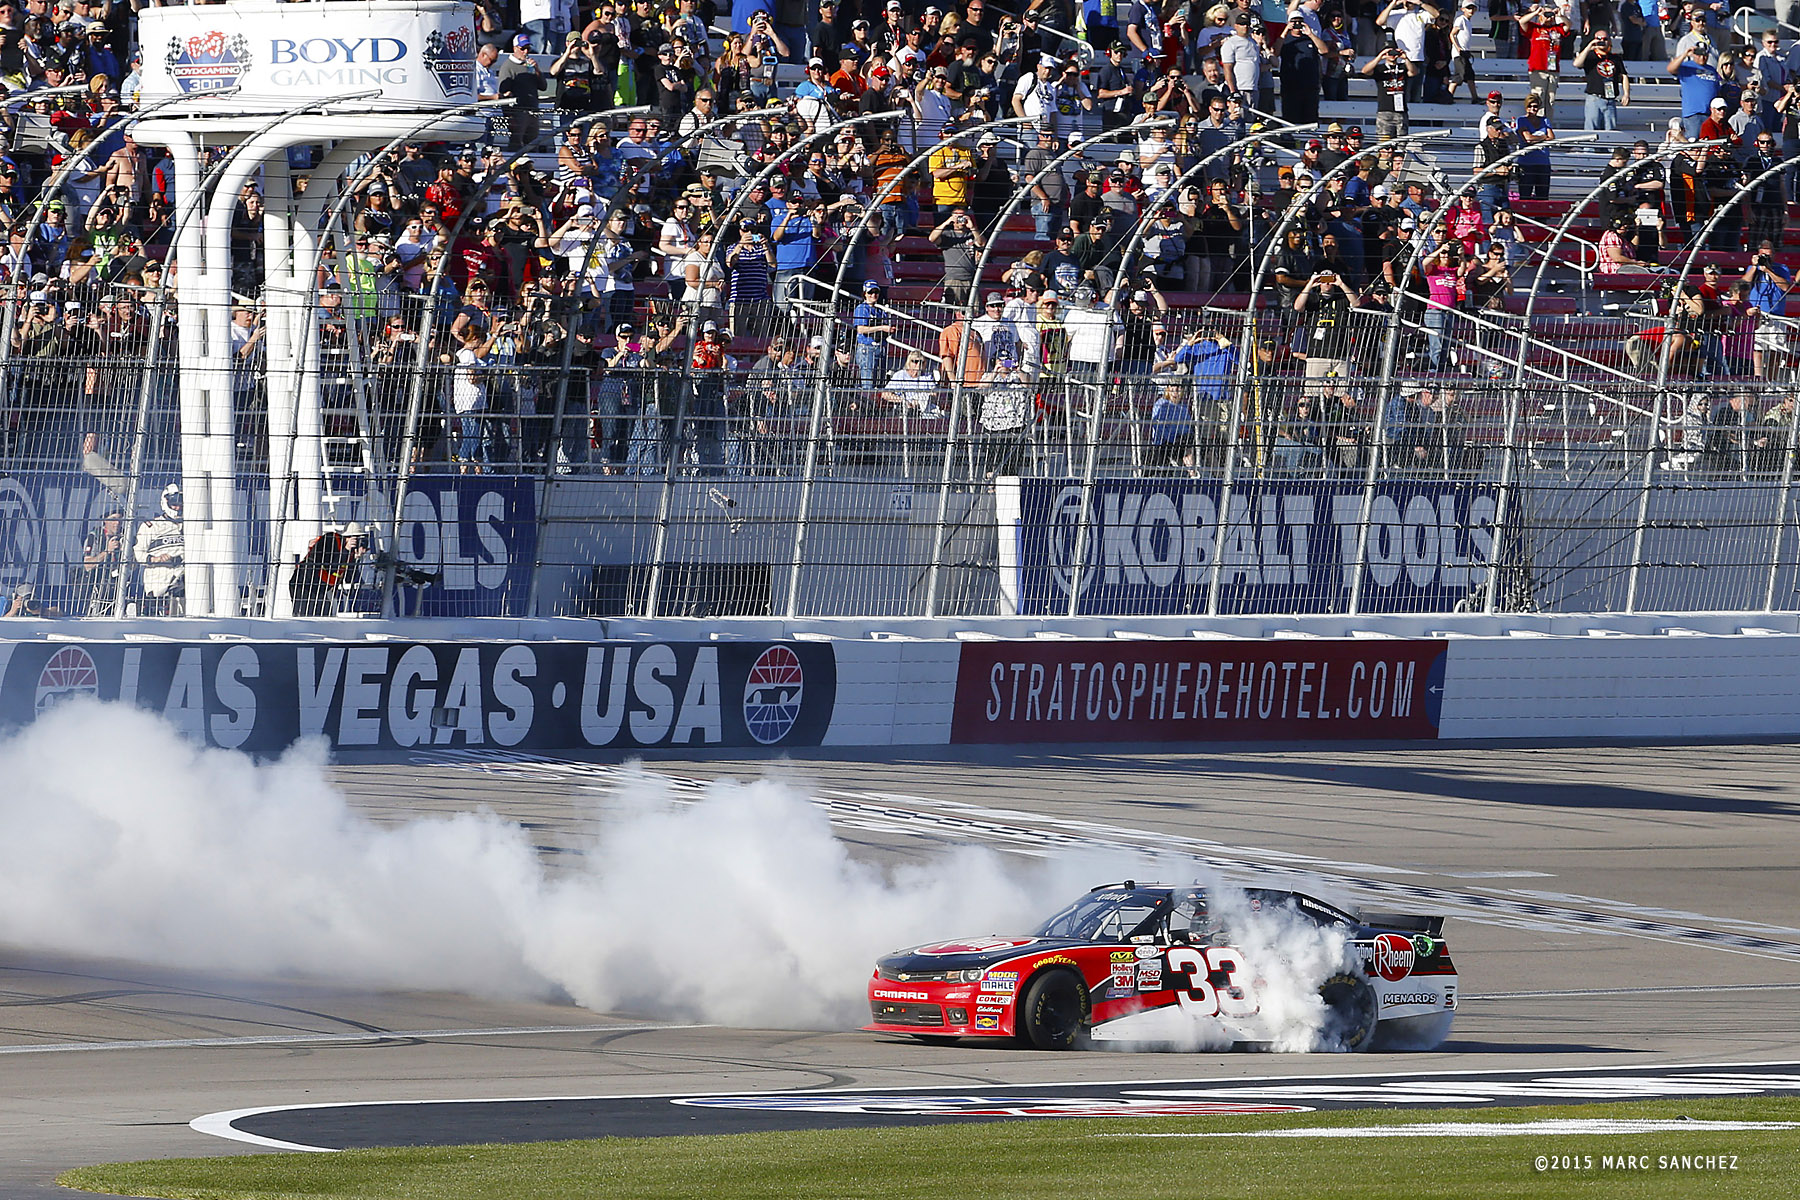 07 March 2015: Austin Dillon (33) Richard Childress Racing Chevrolet Camaro performs a burnout at the finish line after winning the NASCAR XFINITY Series Boyd Gaming 300 at Las Vegas Motor Speedway in Las Vegas, Nevada. (Photo by: Marc Sanchez/Icon Sportswire)